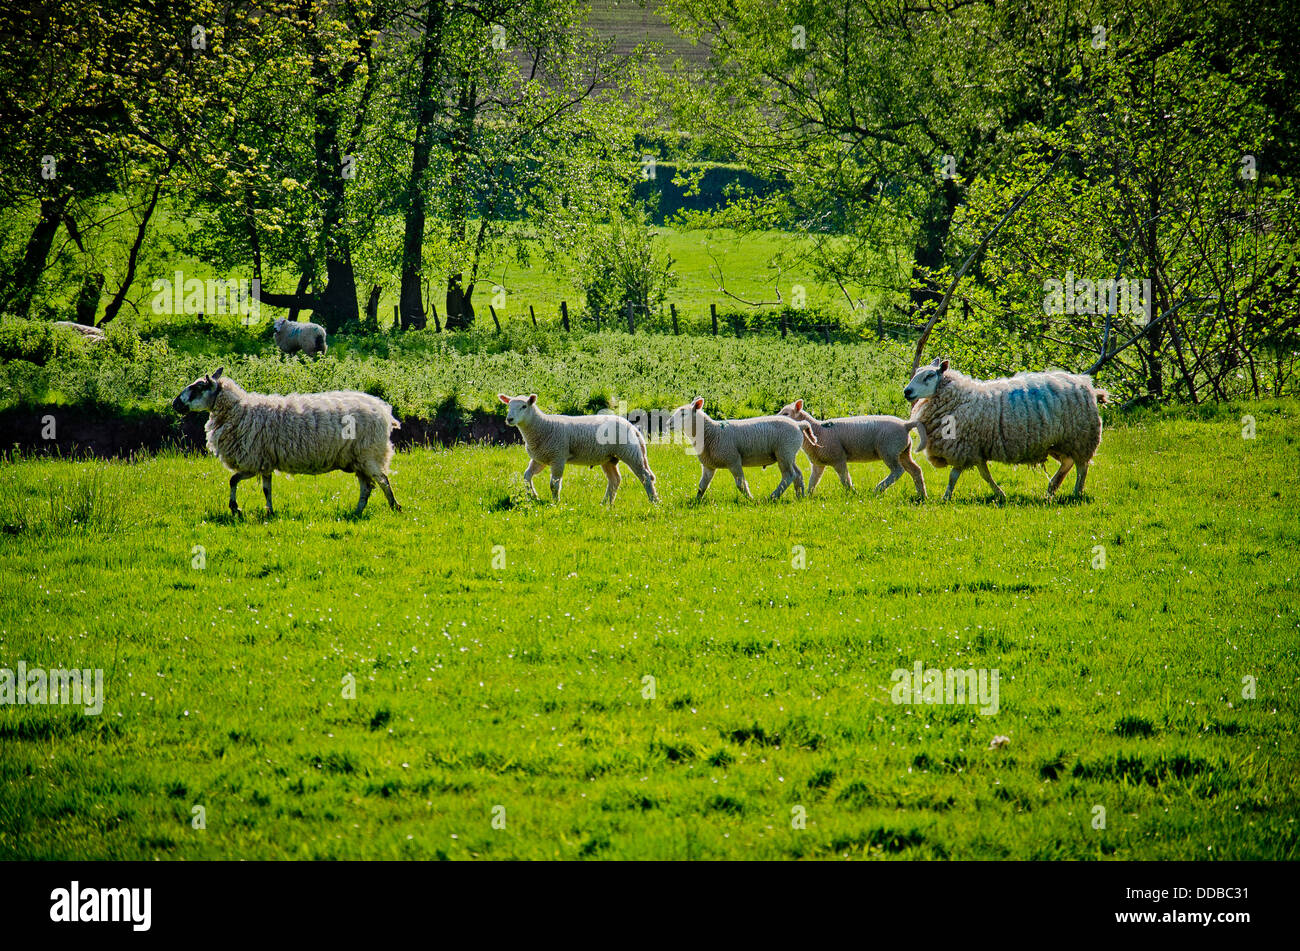 Sheep and lambs walk through a spring meadow - Stock Image